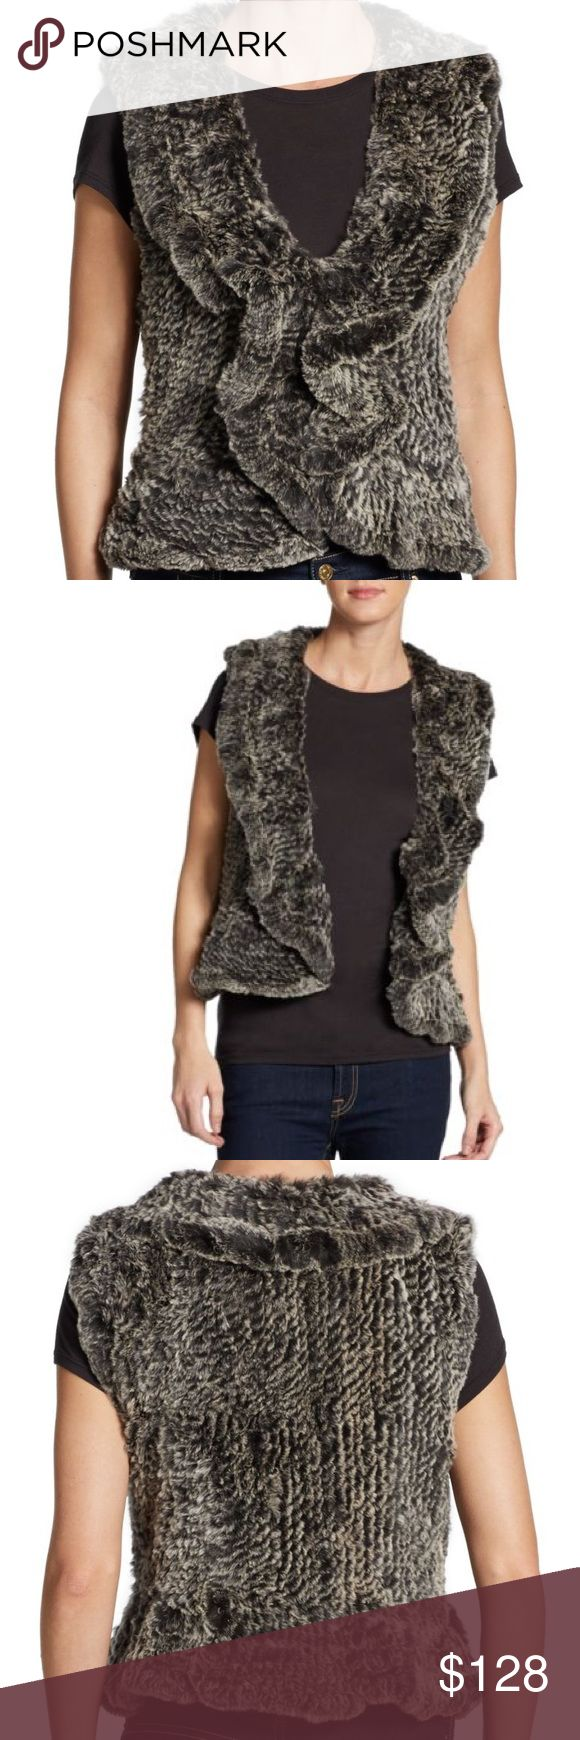 Saks Fifth Avenue Ruffle Rabbit Fur Vest No tag but brand new.  So soft and ruffled edge makes it a little different from other fur vests. It's grey and black mix.  I fell in love at store but I just do not wear it for some reason.  Cute with jeans! Saks Fifth Avenue Jackets & Coats